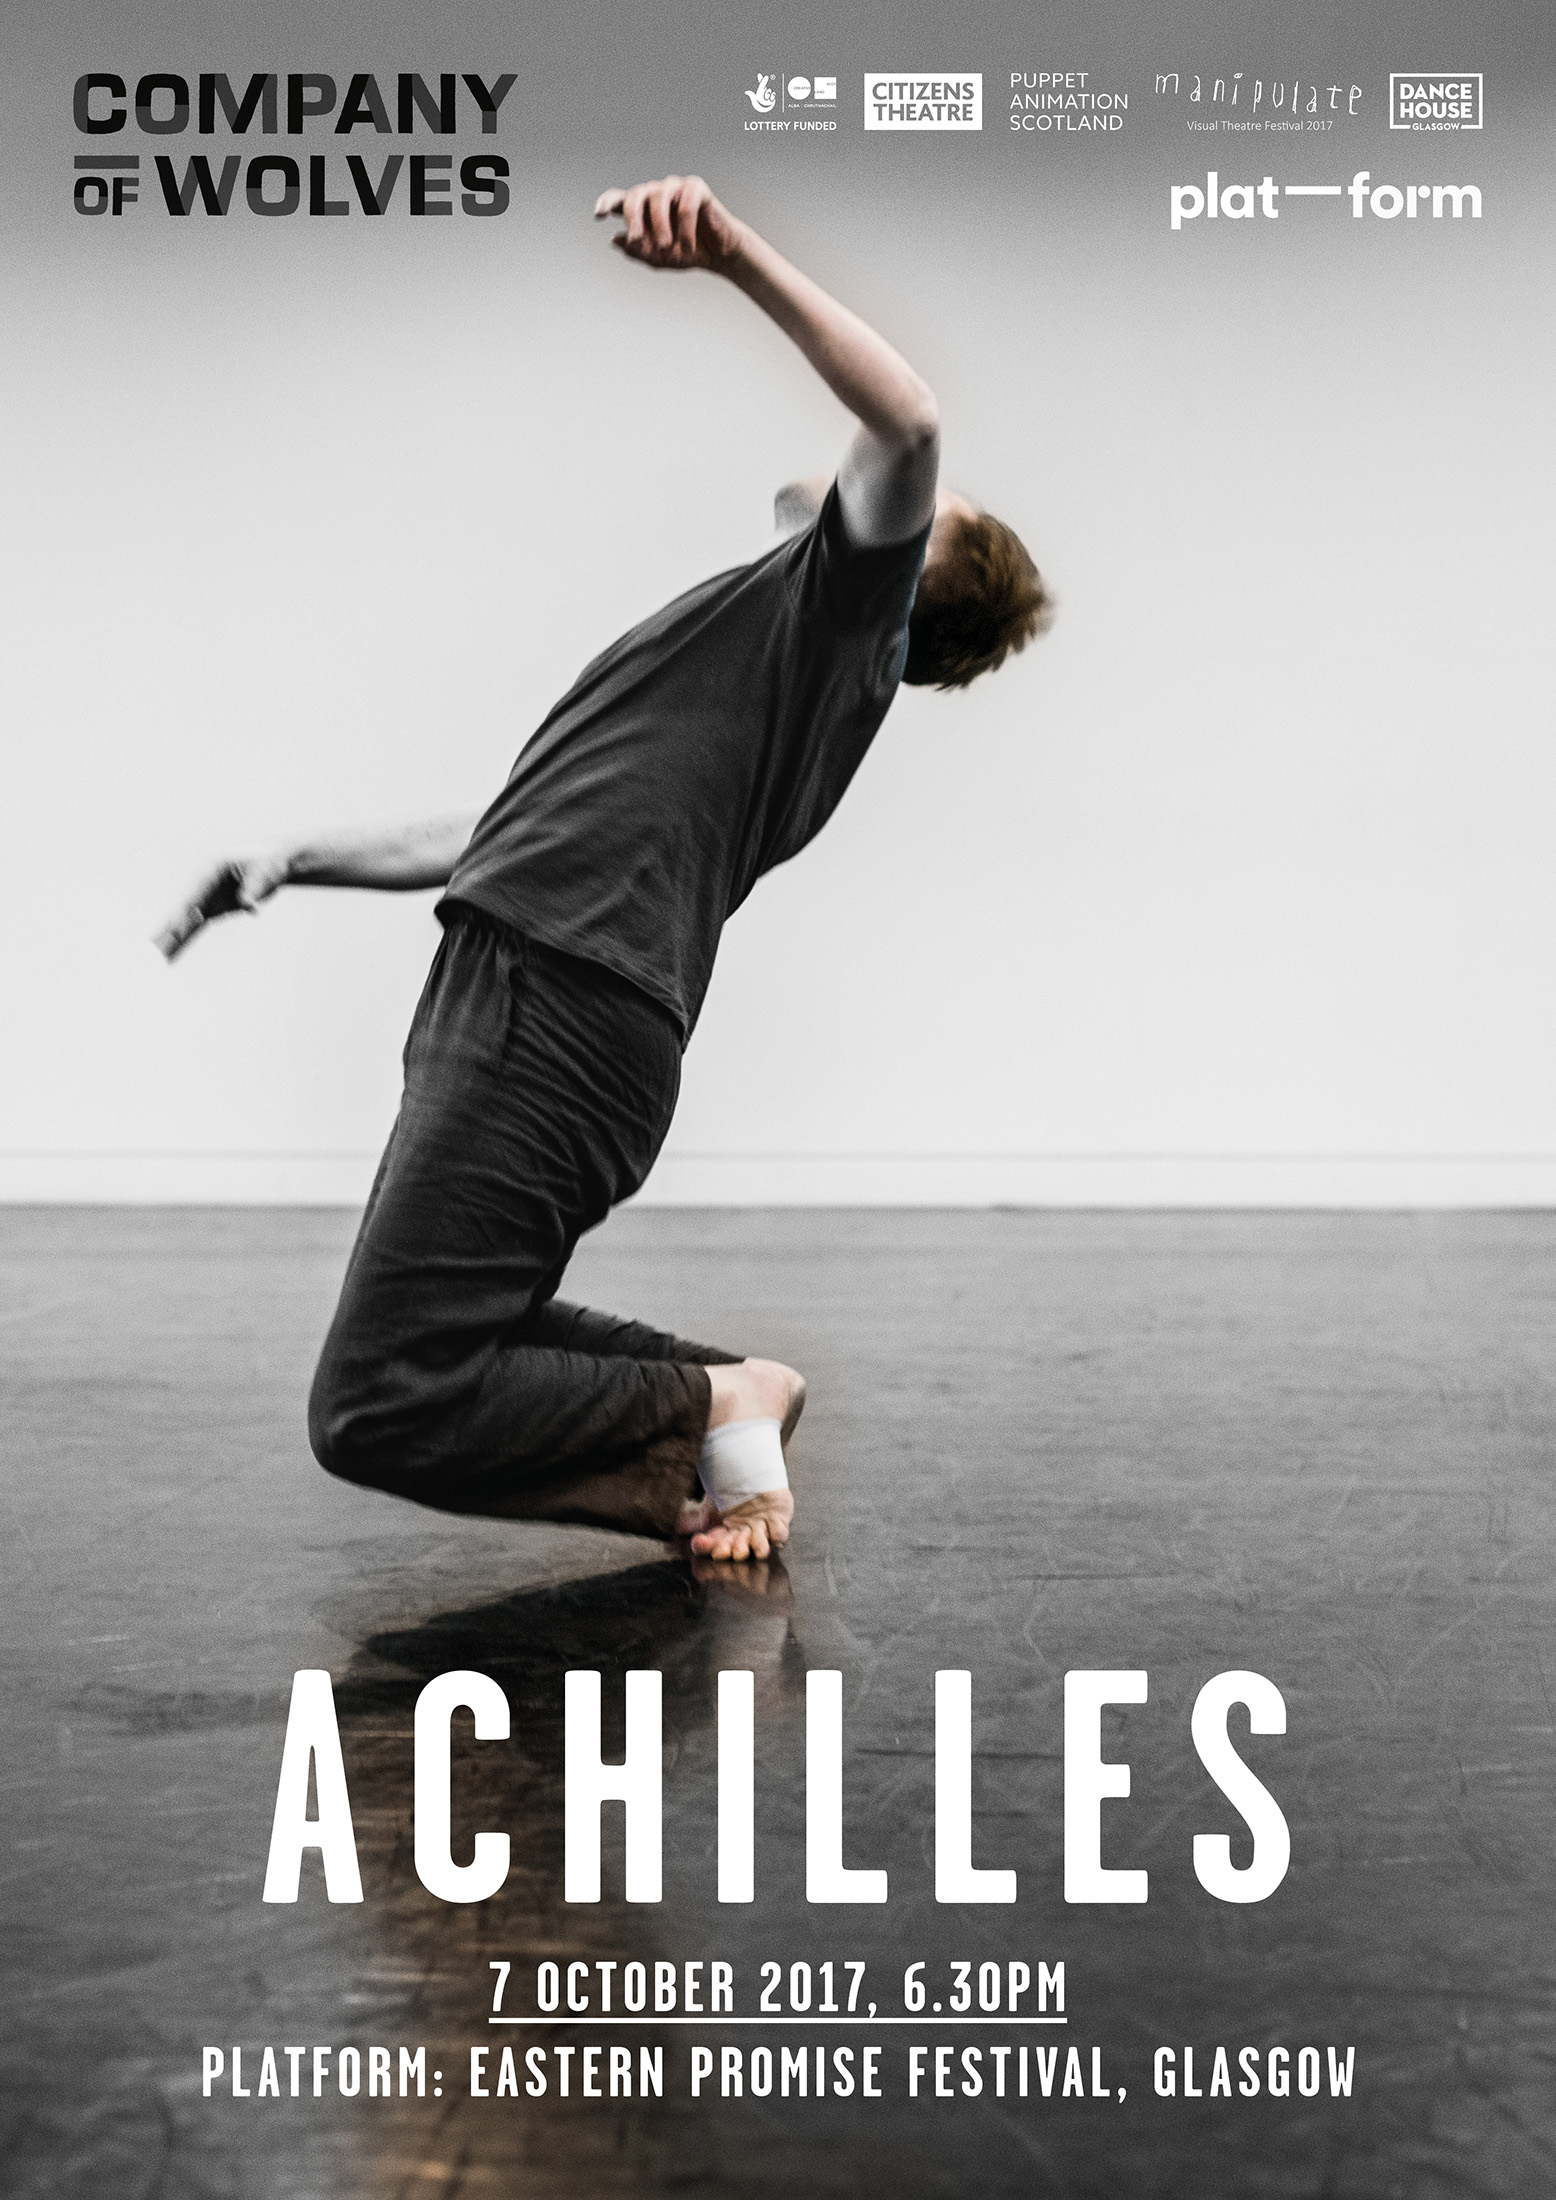 Company of Wolves: Achilles